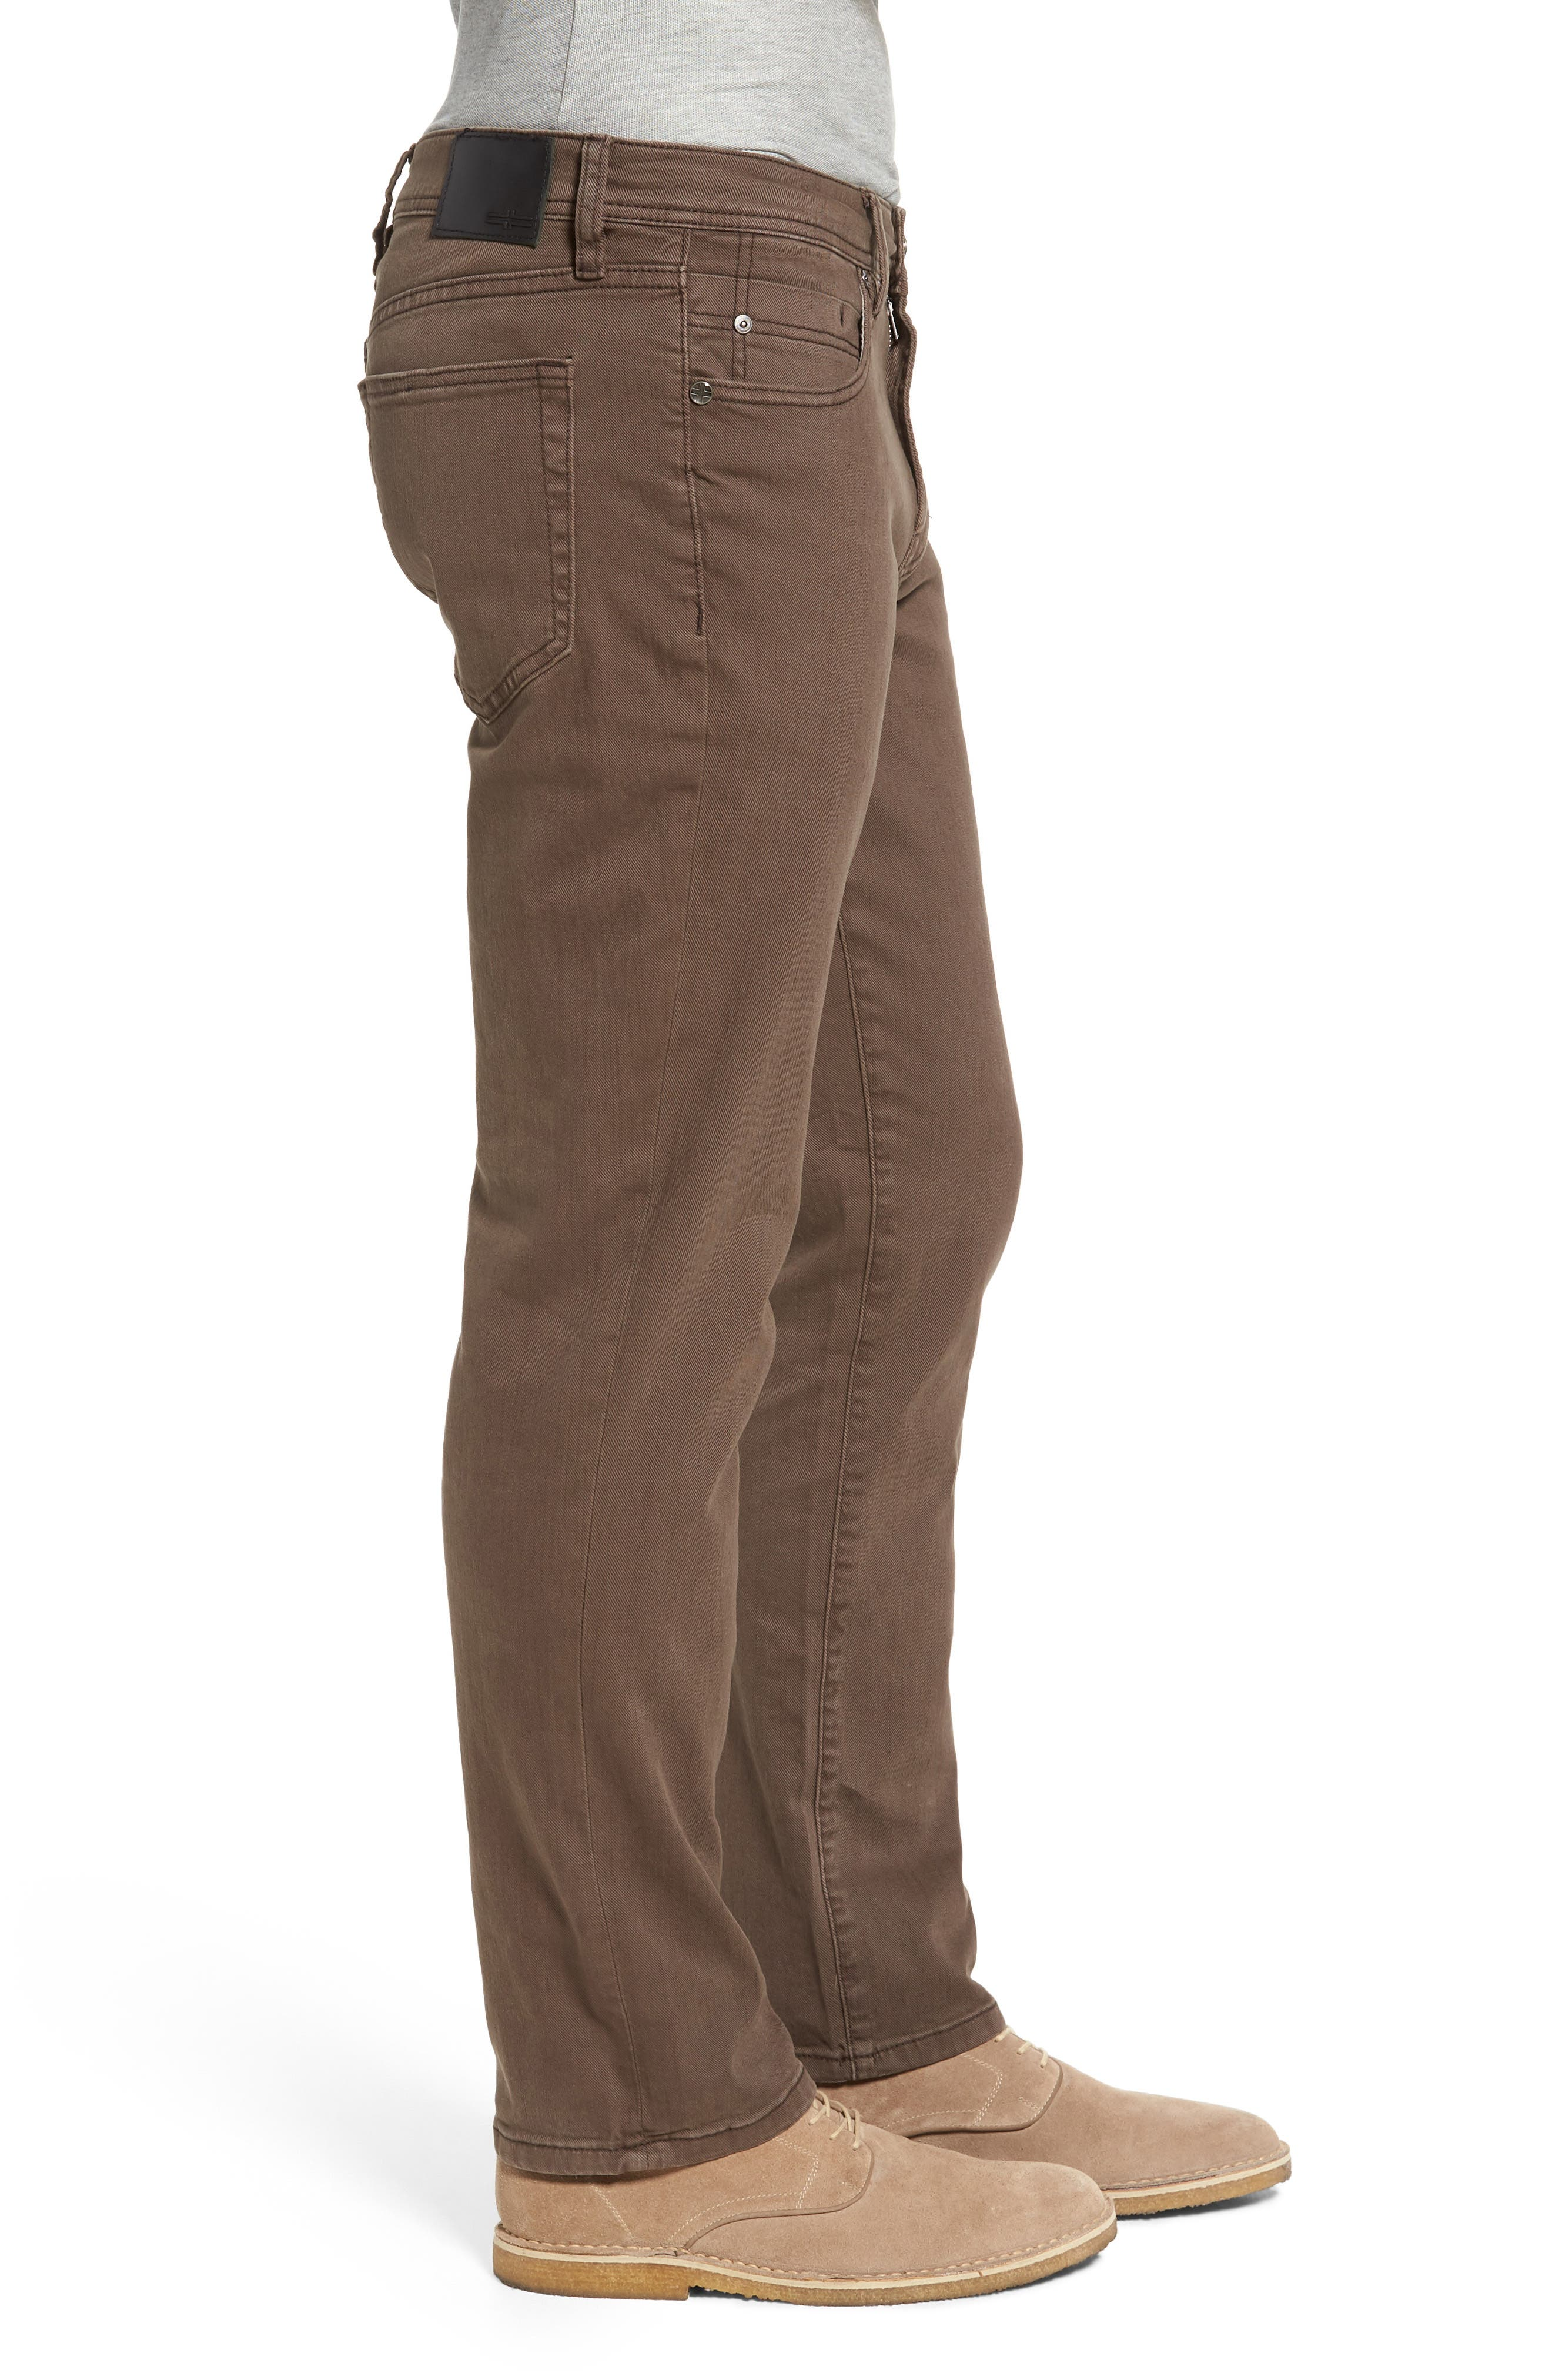 Jeans Co. Regent Relaxed Fit Jeans,                             Alternate thumbnail 3, color,                             Tobacco Leaf